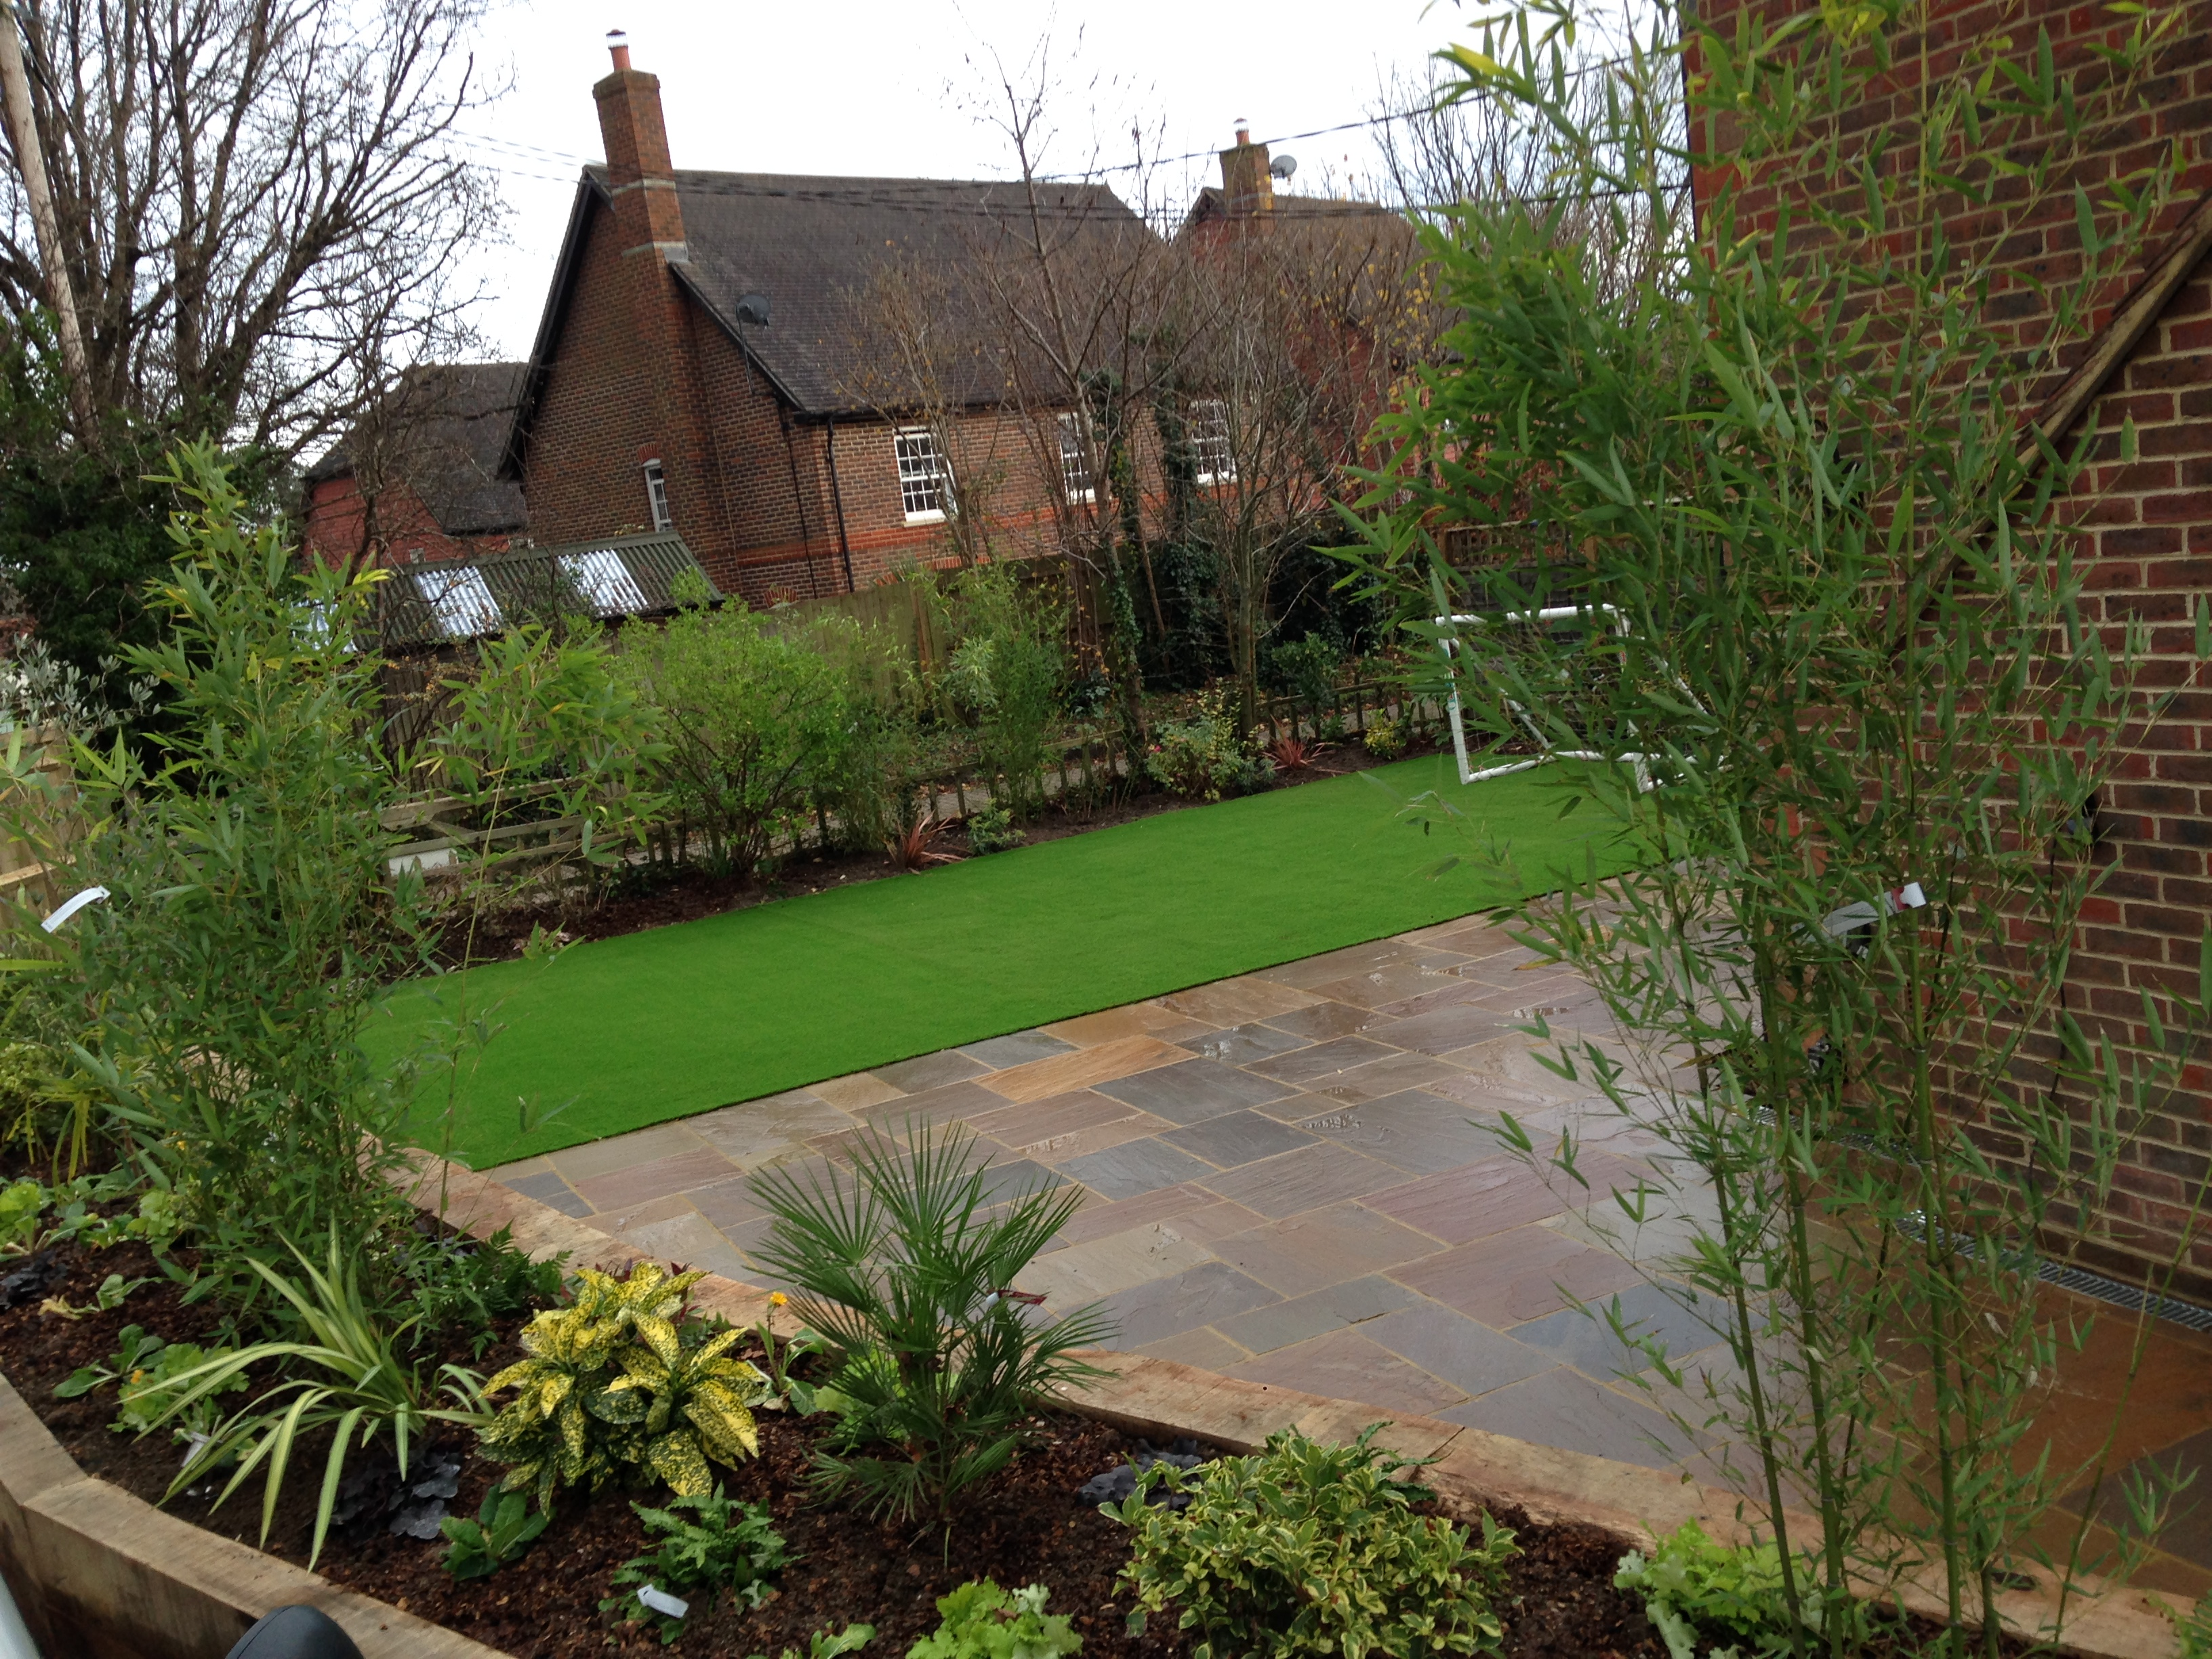 Garden landscaping and design raised flowerbed boarder with large patio and artificial grass